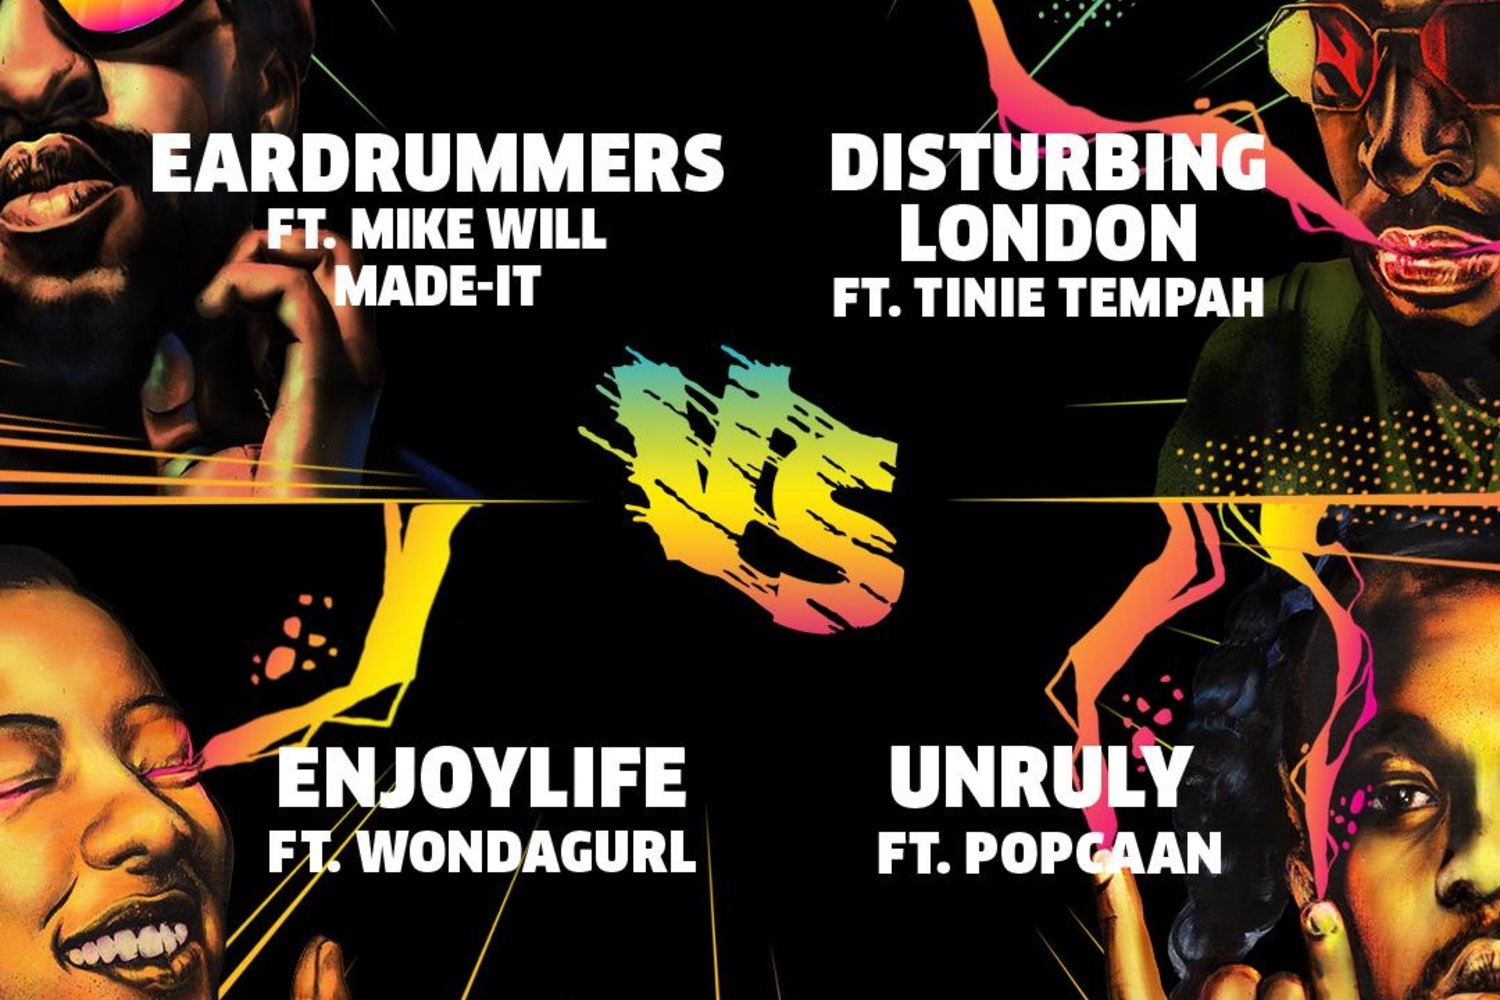 eardrummers disturbing london enjoy life and unruly battle in red bull culture clash atlanta